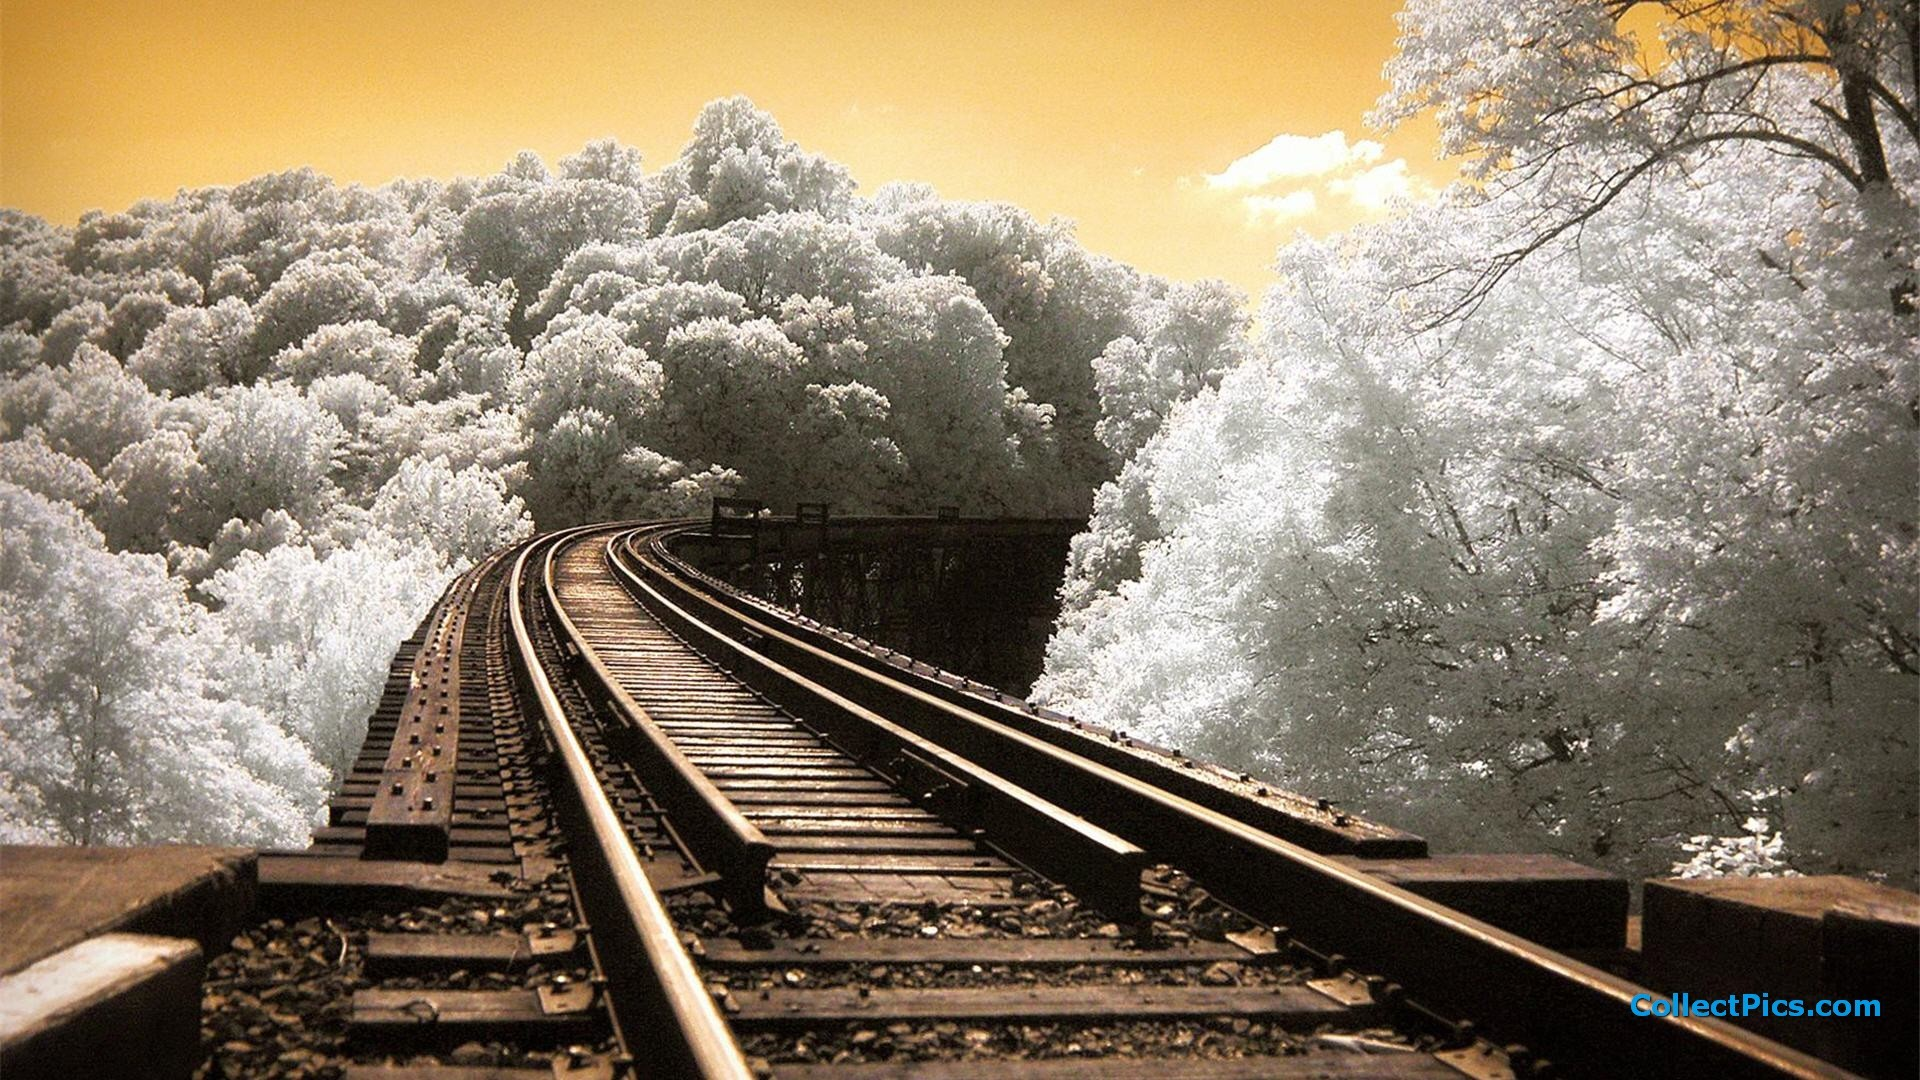 1920x1080 Wallpapers Hd Backgrounds Images Pics Photos: Train Track Wallpaper (74+ Images